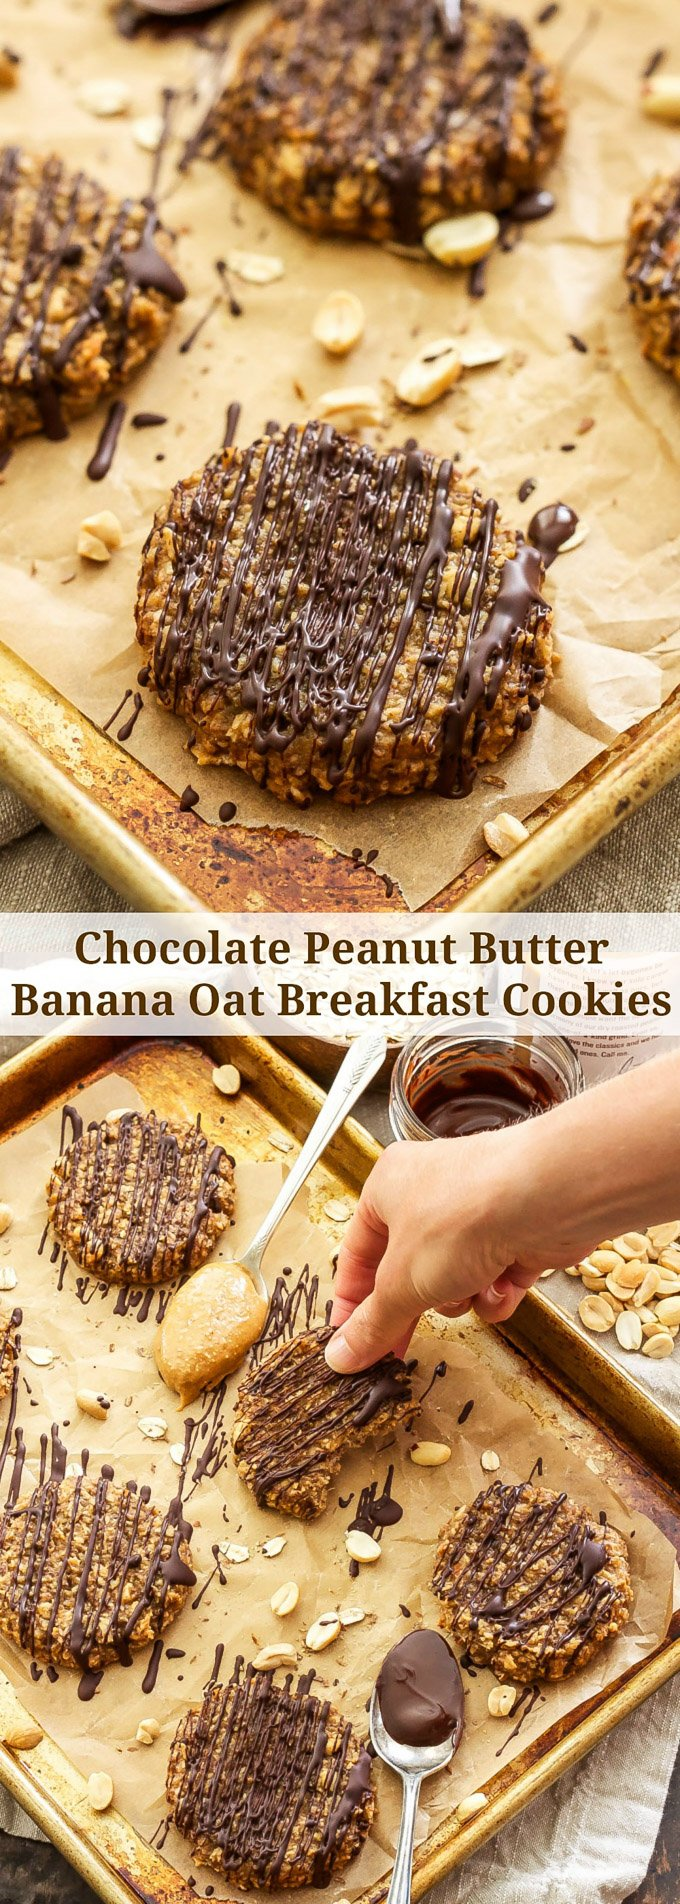 Chocolate Peanut Butter Banana Oat Breakfast Cookies | These tasty, gluten-free, easy to make breakfast cookies will become a fast favorite in your house! No flour, oil, butter or refined sugars.